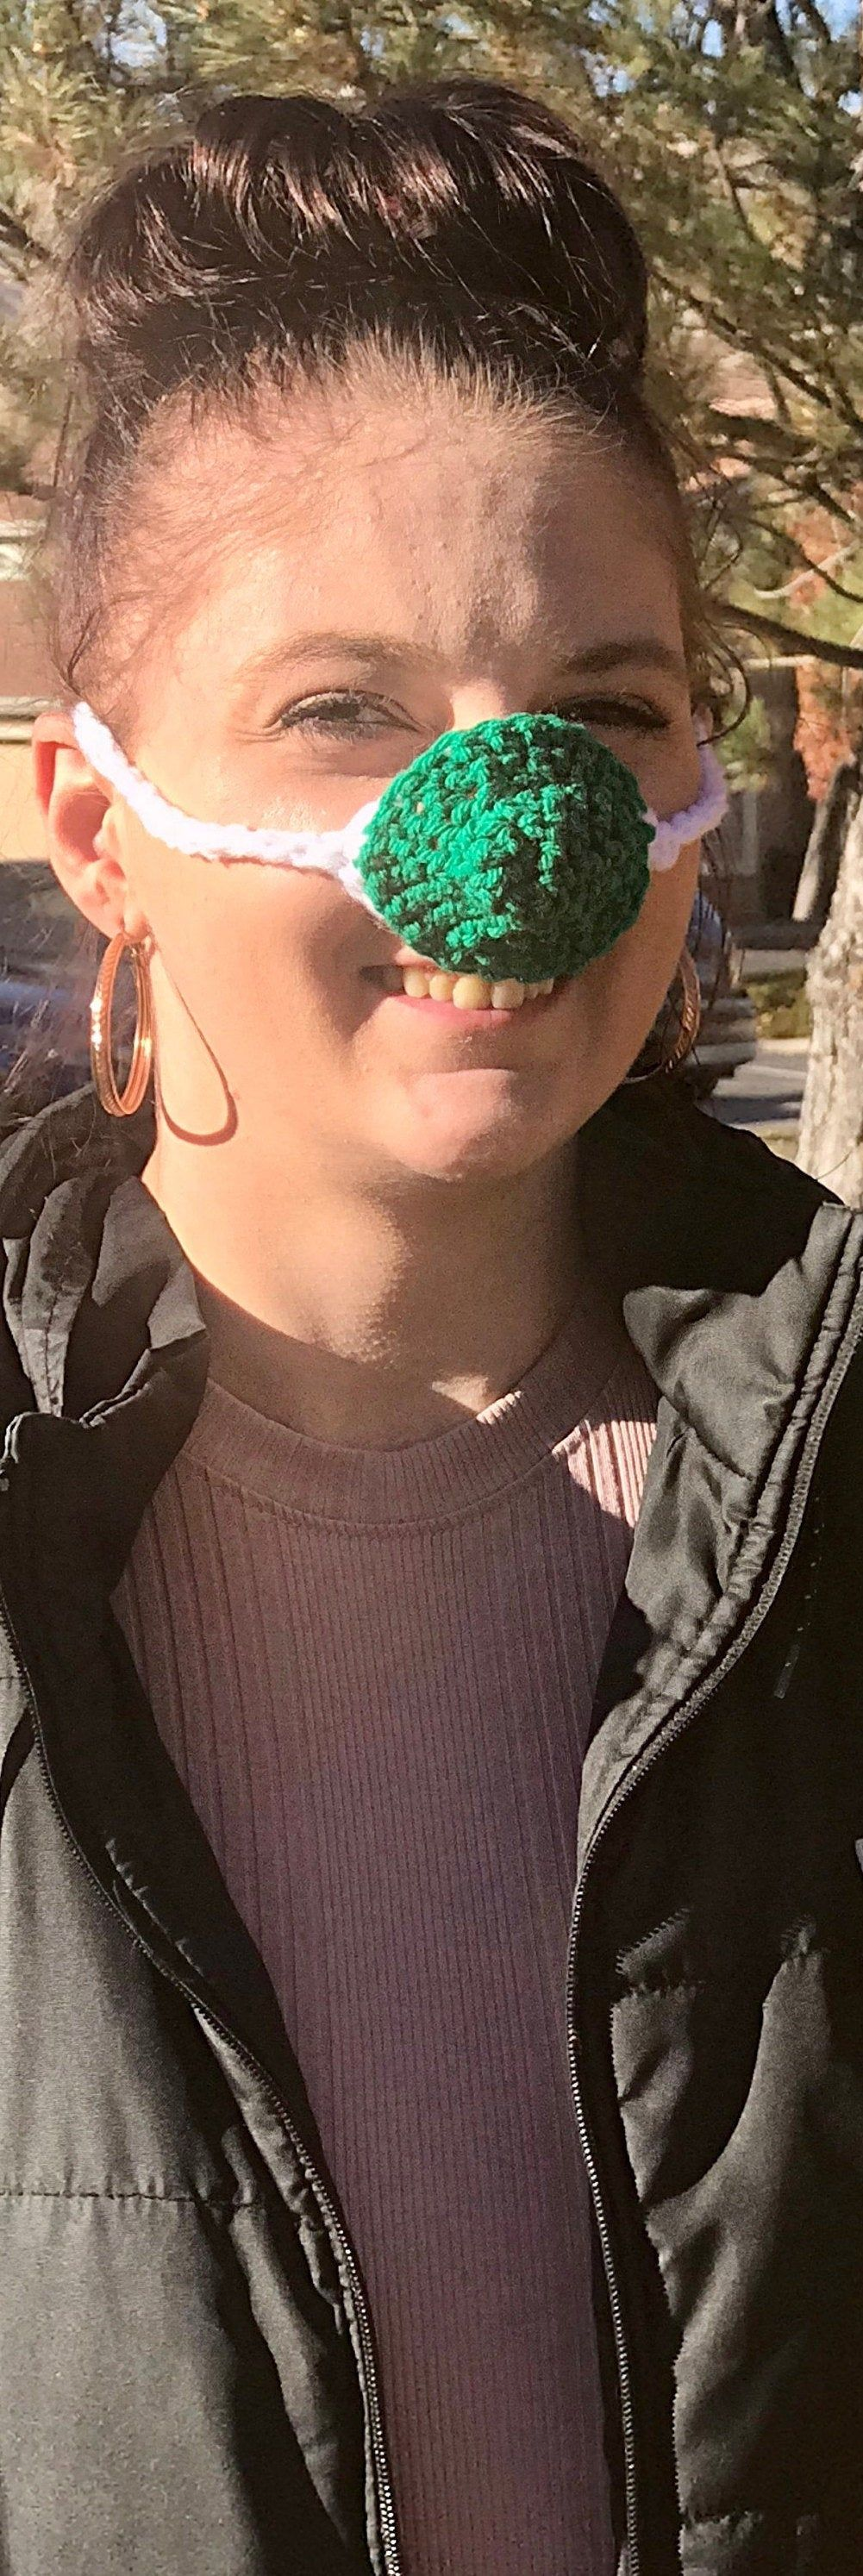 Nose Warmer Green White Adult Teen Adjustable Ties Ready To Ship FREE SHIPPING Crocheted Stocking Stuffer Cold Nose Cover #stockingstuffersforadults